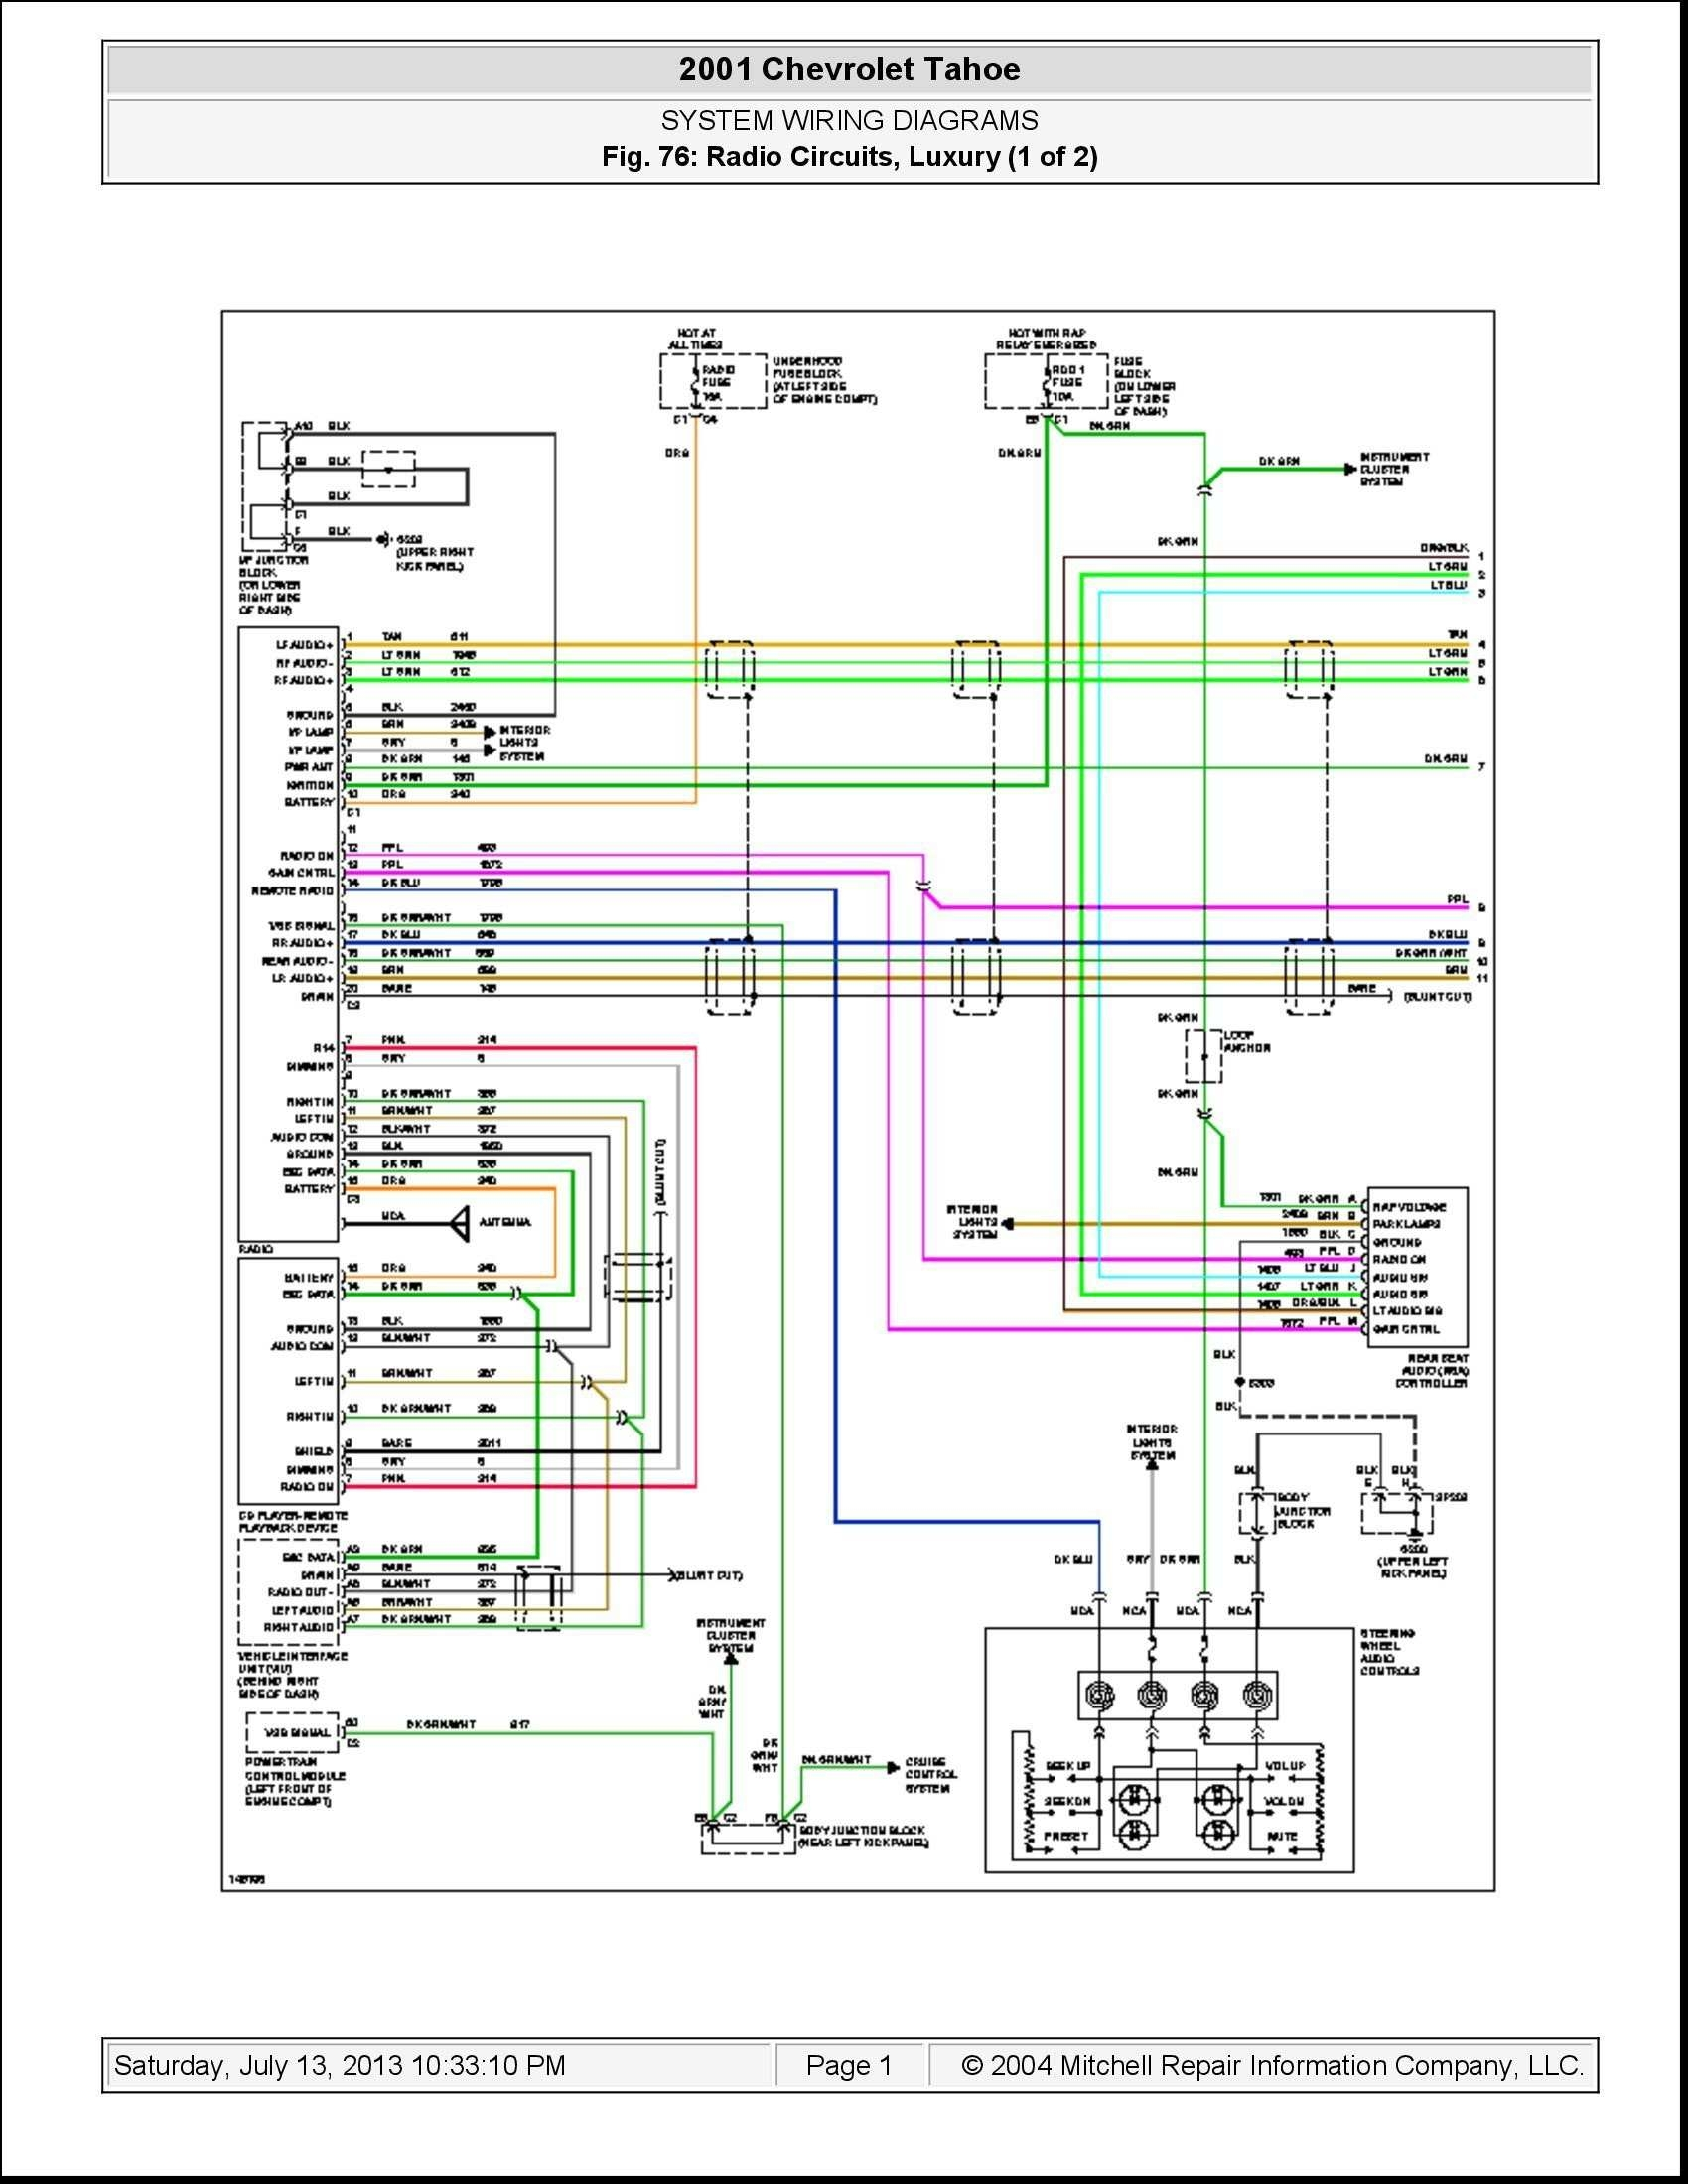 chevy wiring harness diagram Collection-2004 Chevy Silverado Radio Wiring Harness Diagram Best 2005 Chevy 2-l